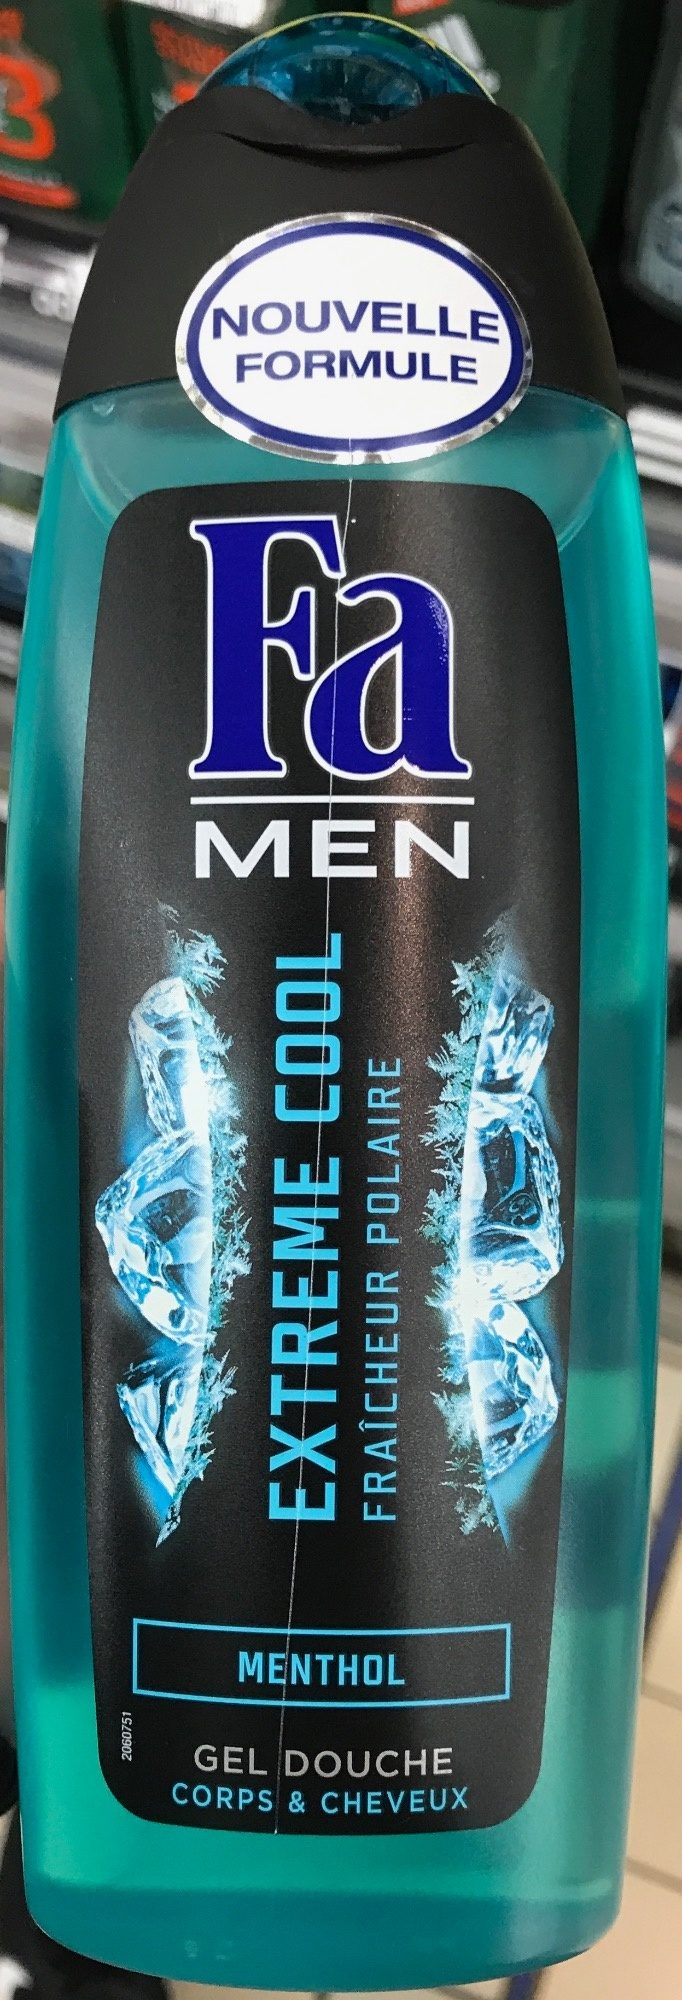 Men Extreme Cool Menthol Gel douche - Product - fr